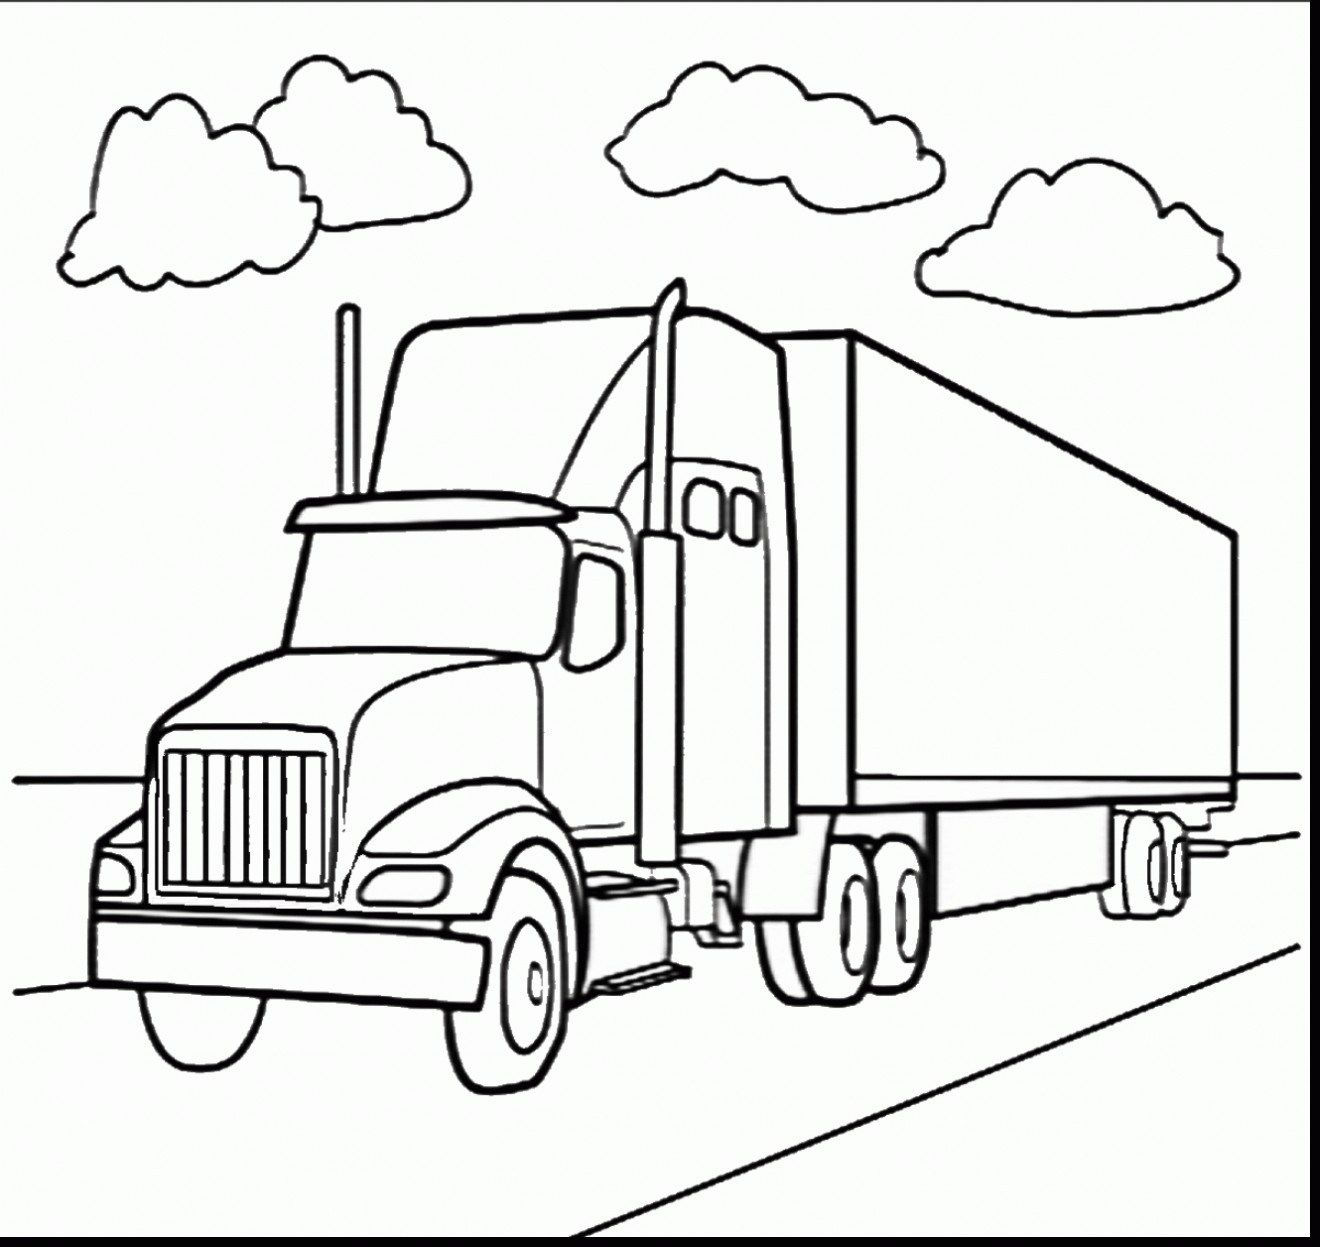 25 Pretty Photo Of Semi Truck Coloring Pages трафареты